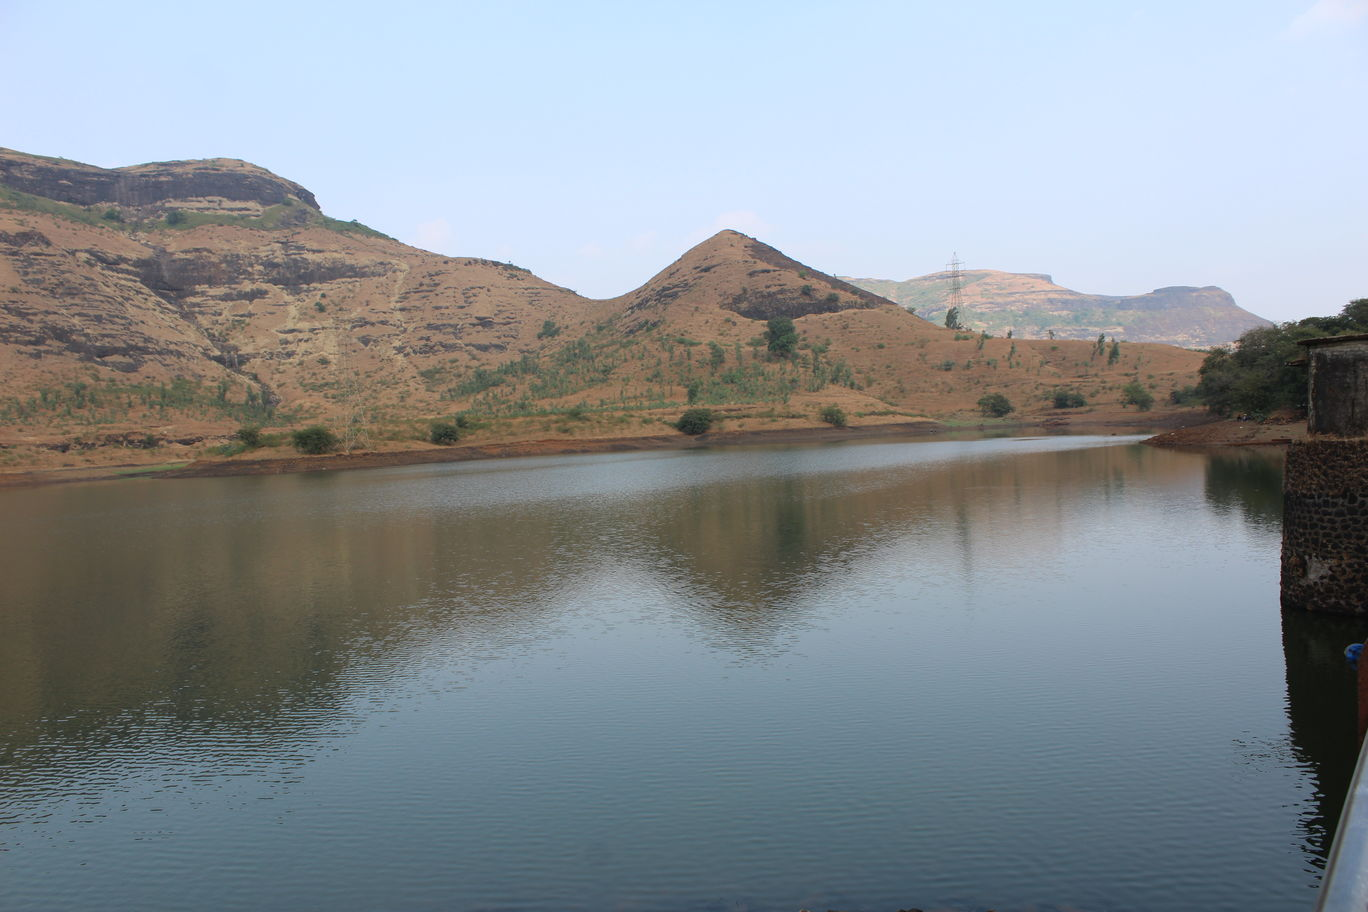 Photo of Igatpuri By bhairavi111